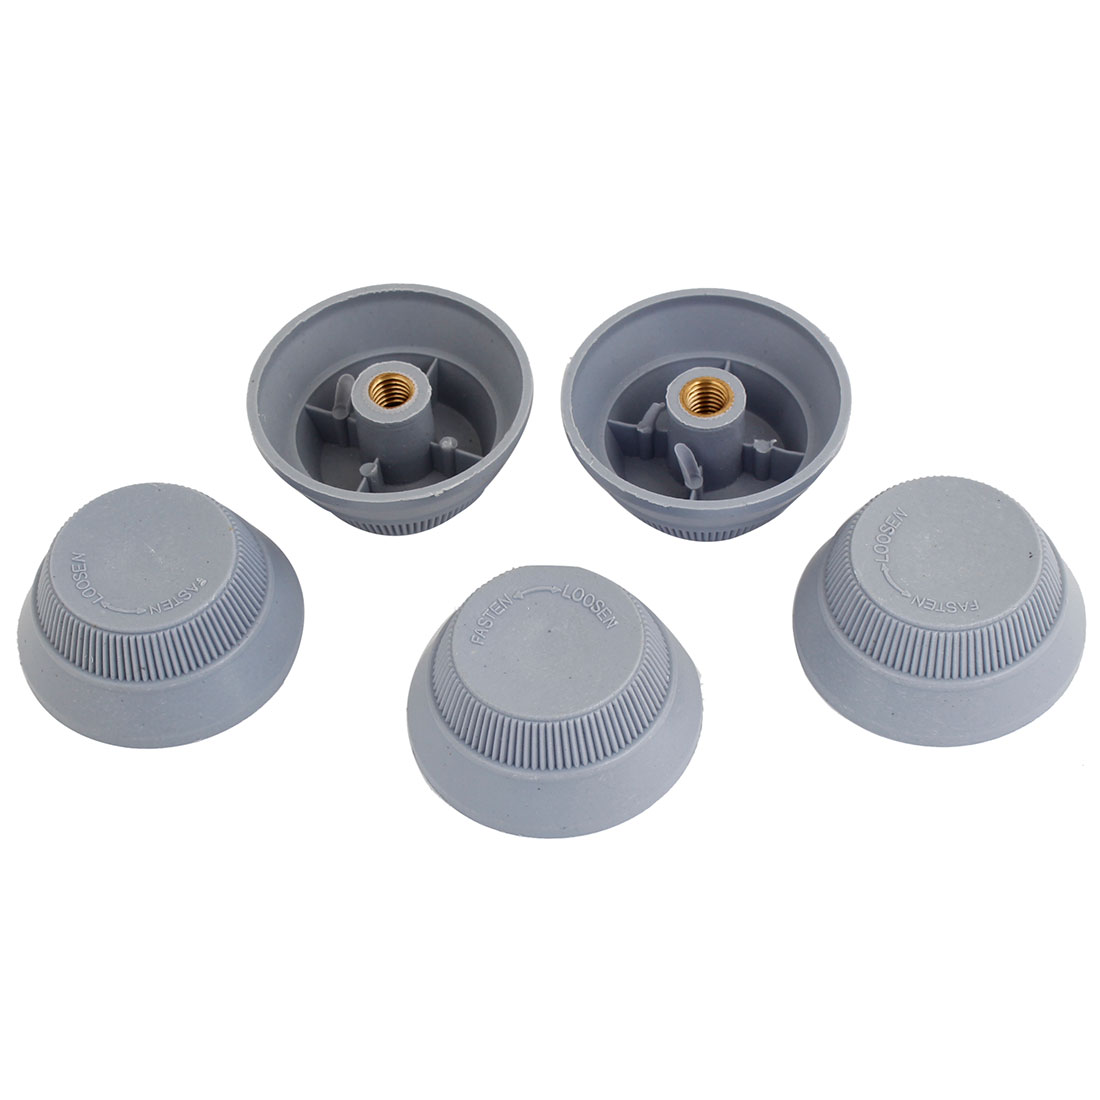 5 Pcs Electric Fan Cutter Screw Female 51mm Height Thread Gray Plastic Nuts